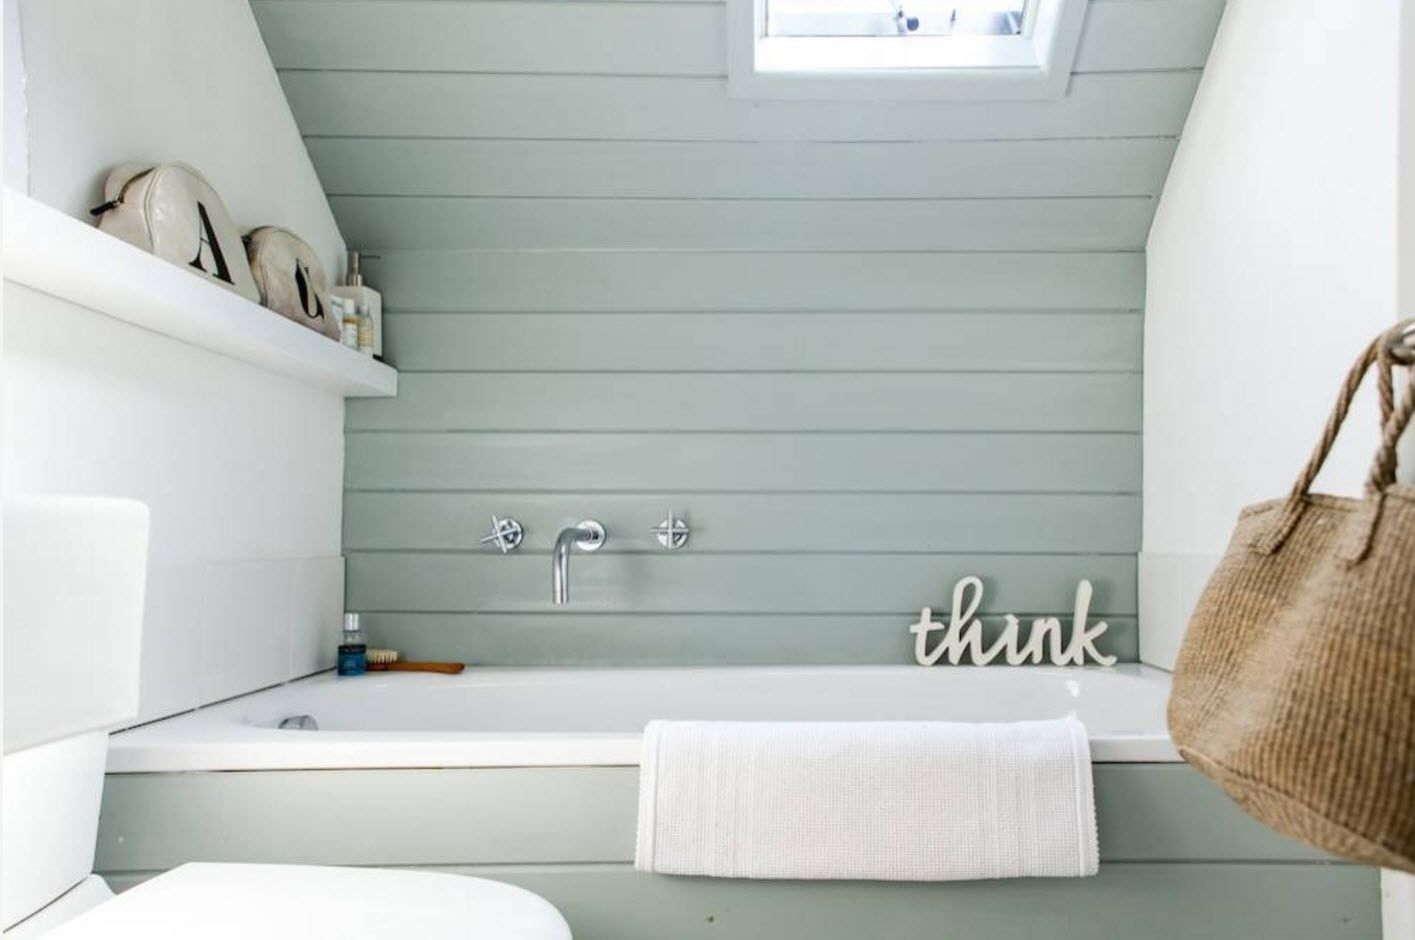 mild tone of olive in the natural style of bathroom with text